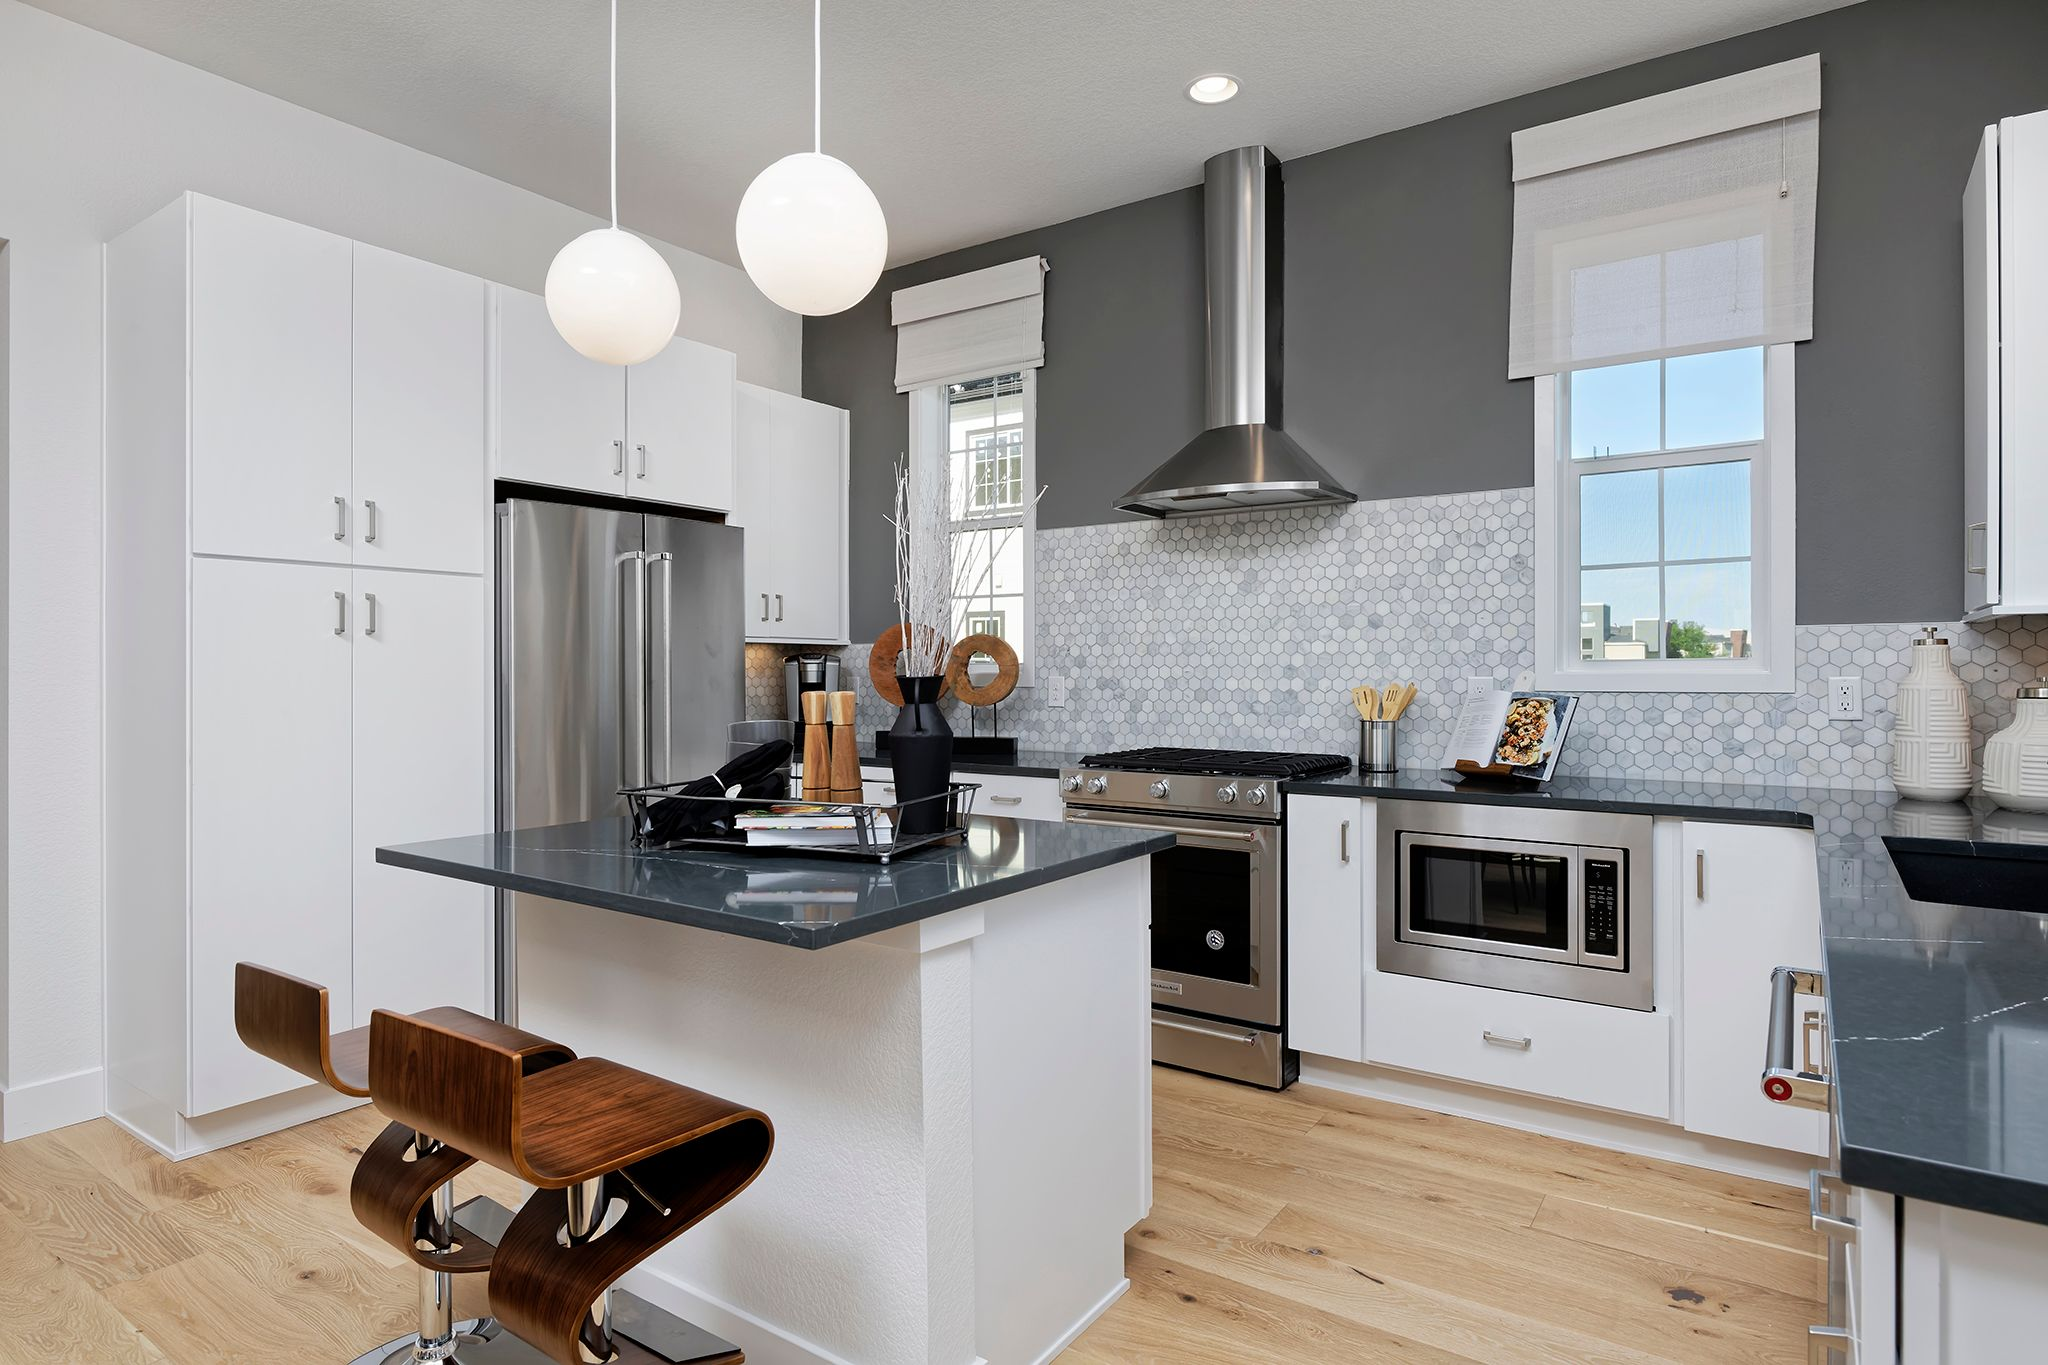 Kitchen featured in the Marquee By Thrive Home Builders in Denver, CO